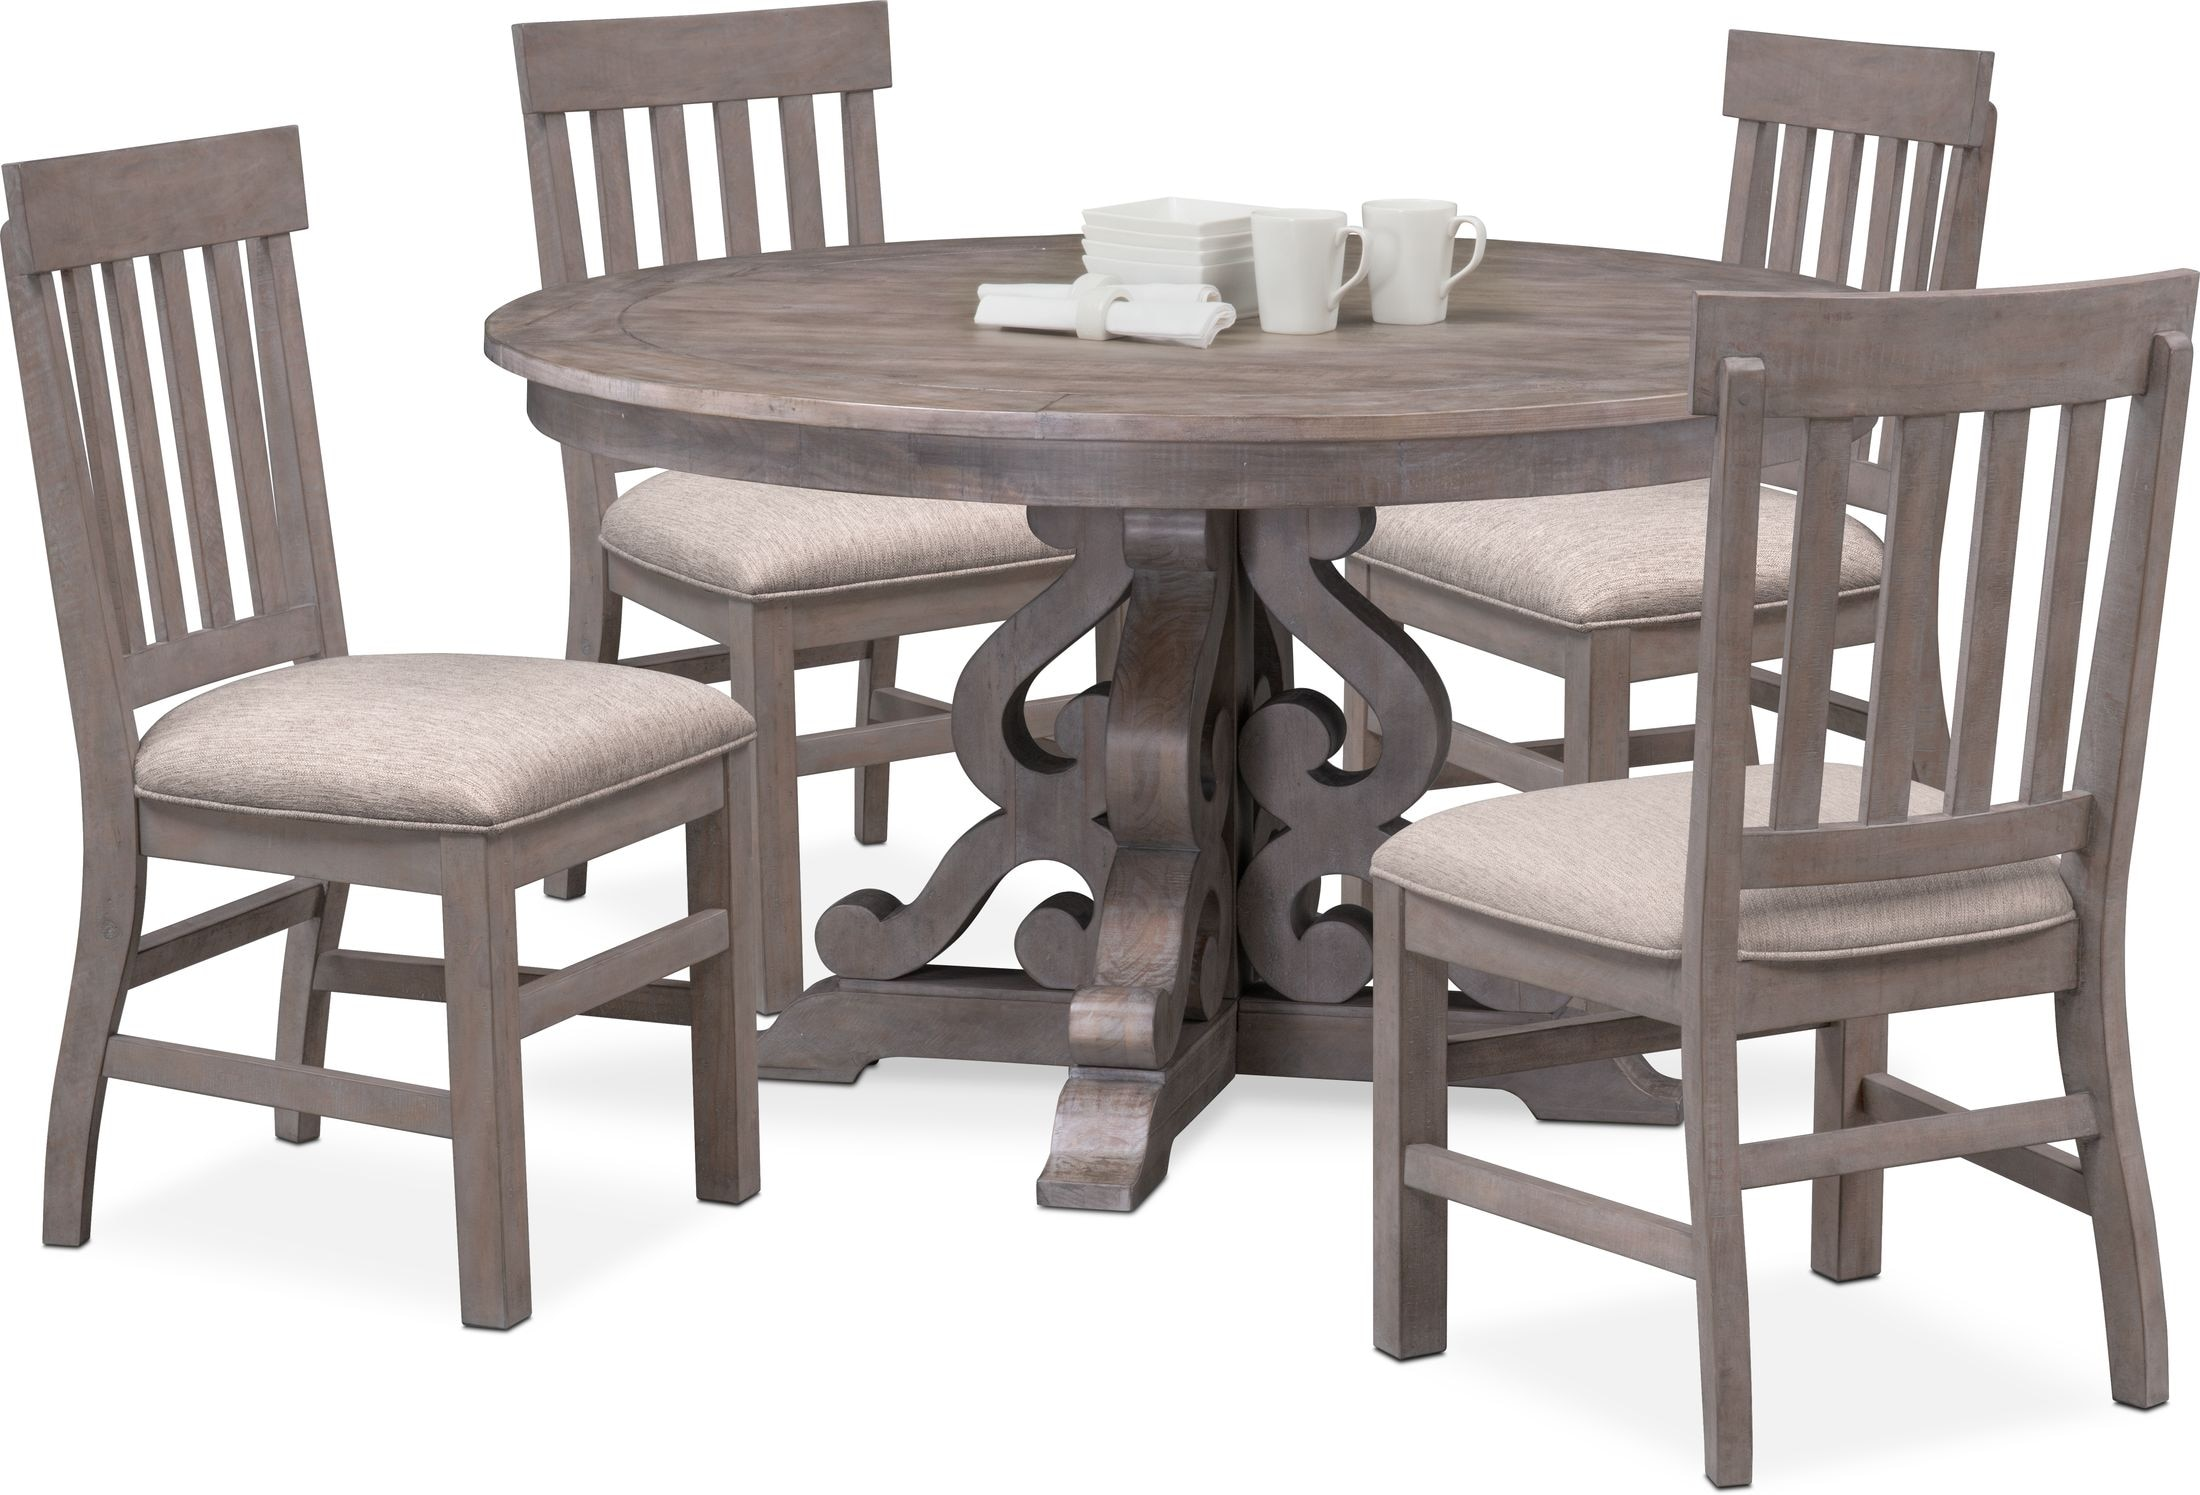 Charthouse Round Dining Table And 4 Side Chairs American Signature Furniture